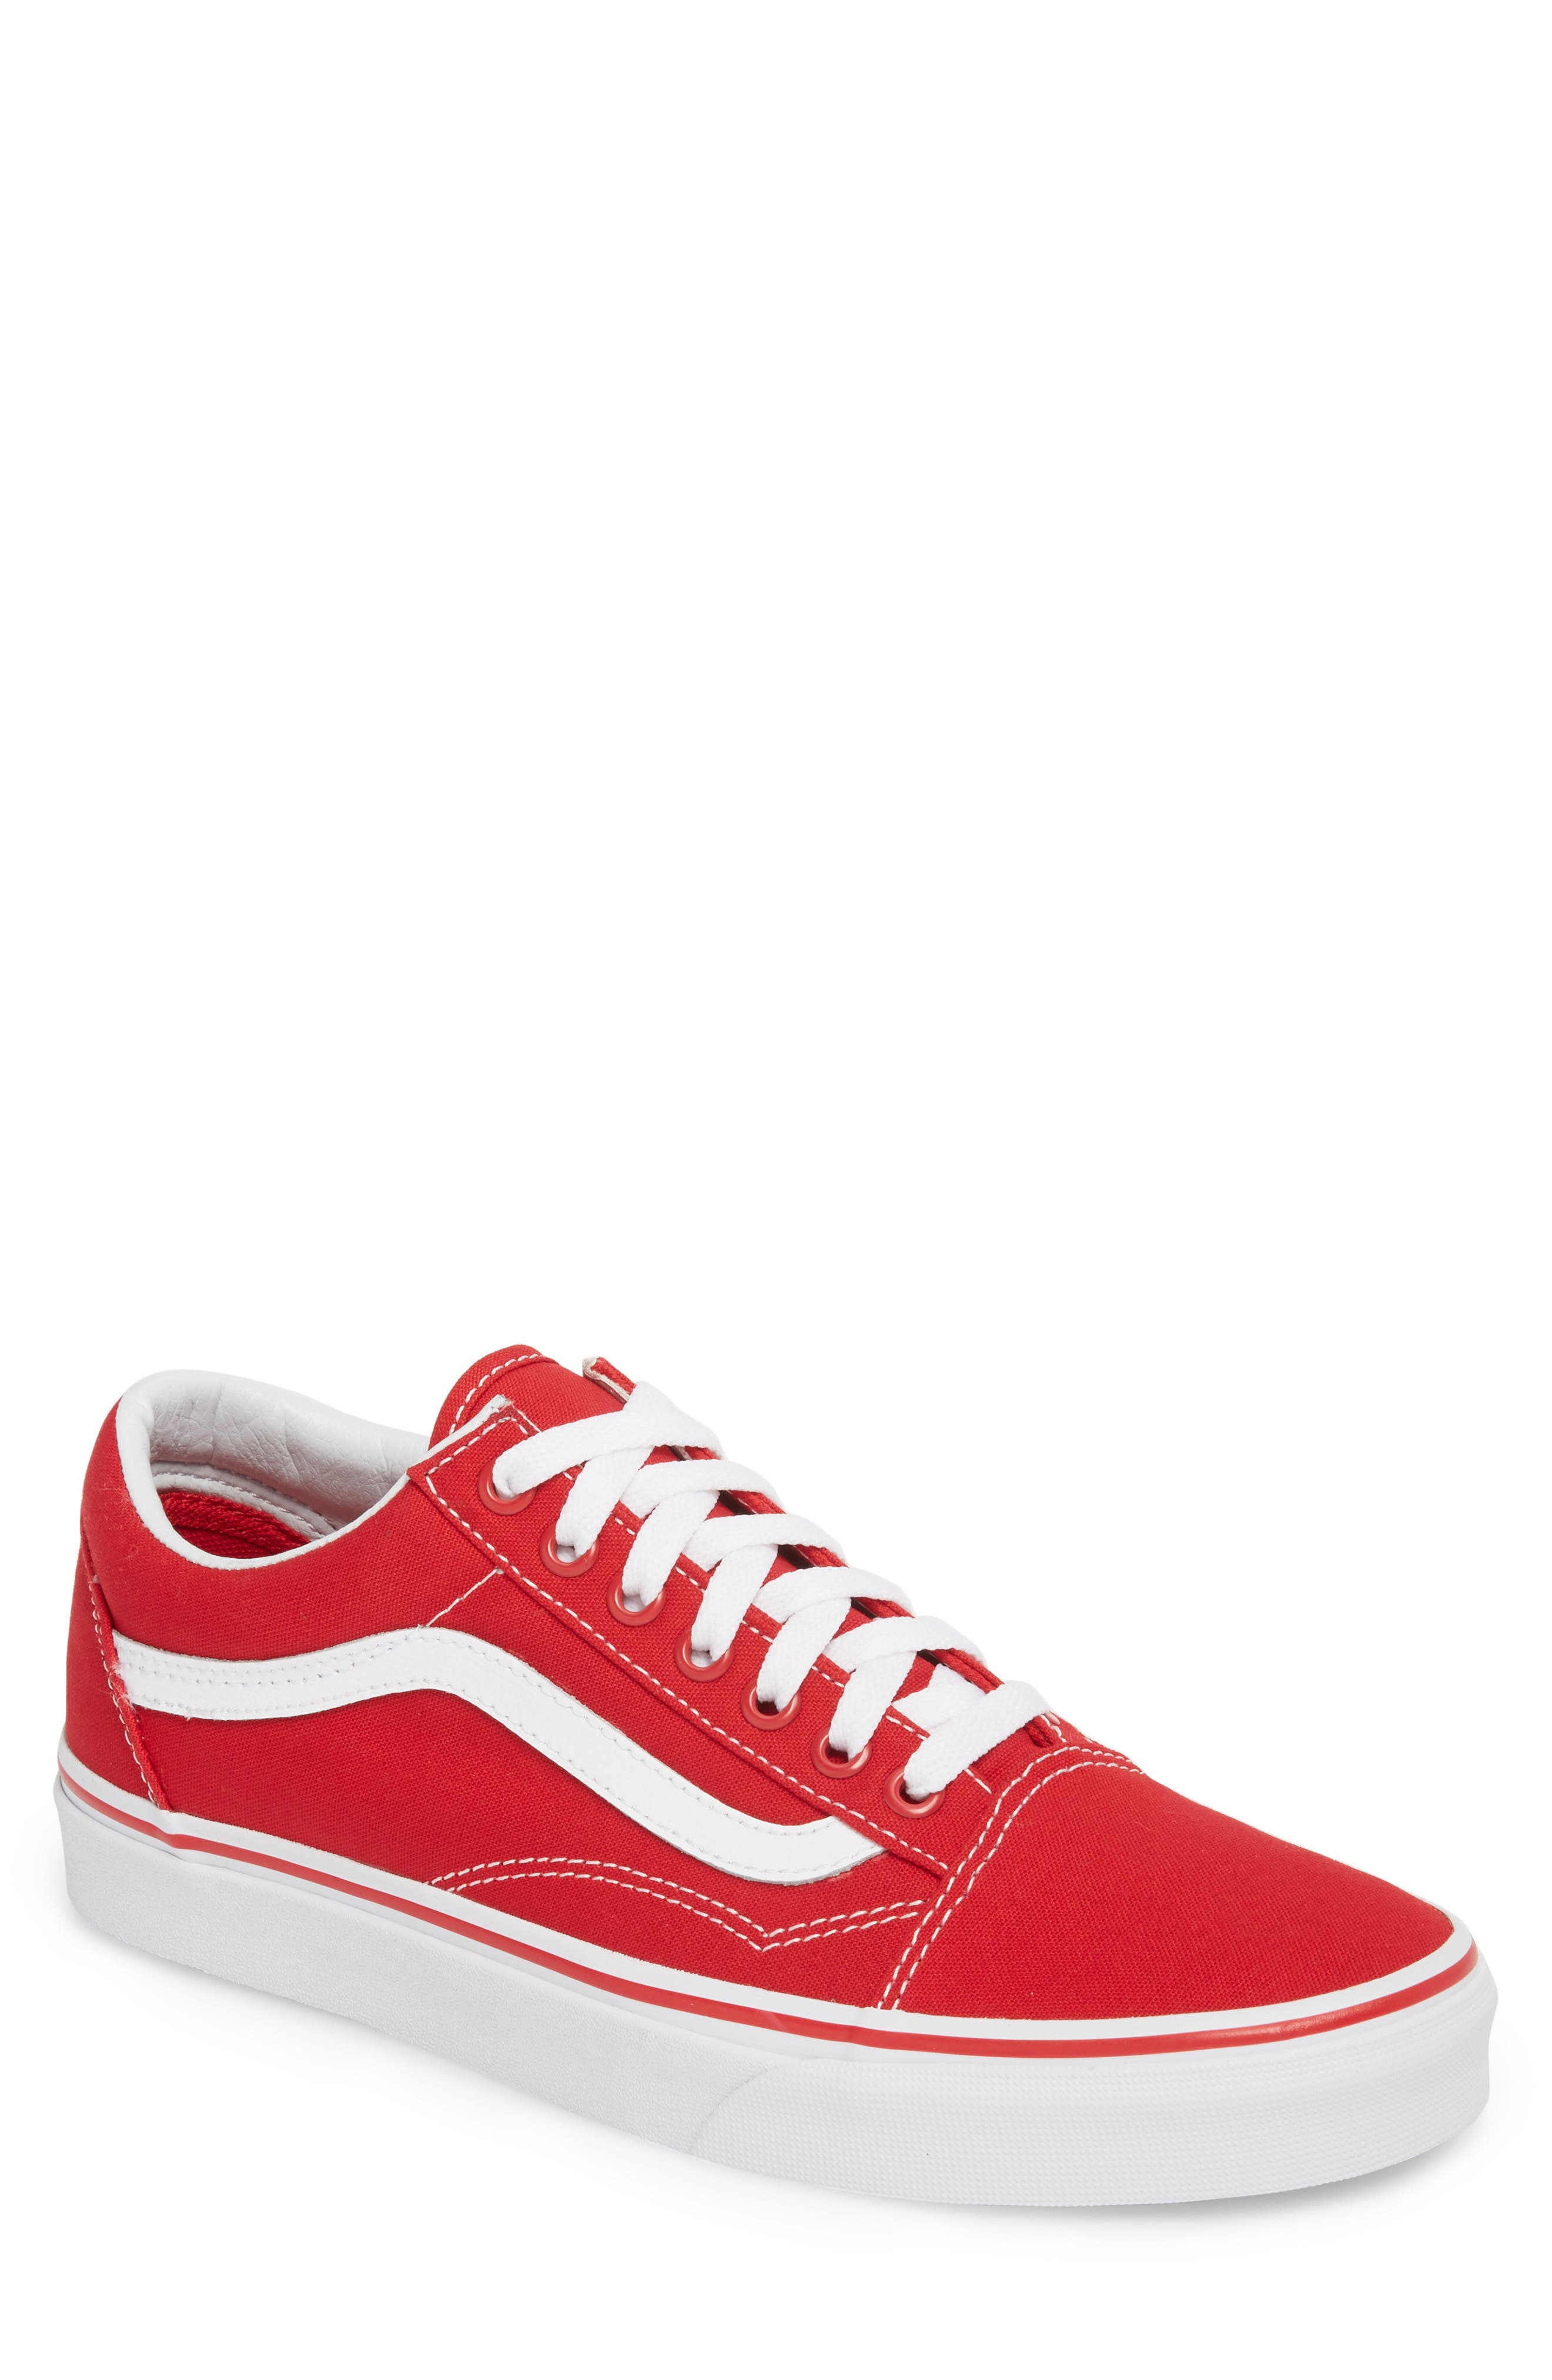 Old Skool Low Top Sneaker,                         Main,                         color, FORMULA ONE CANVAS